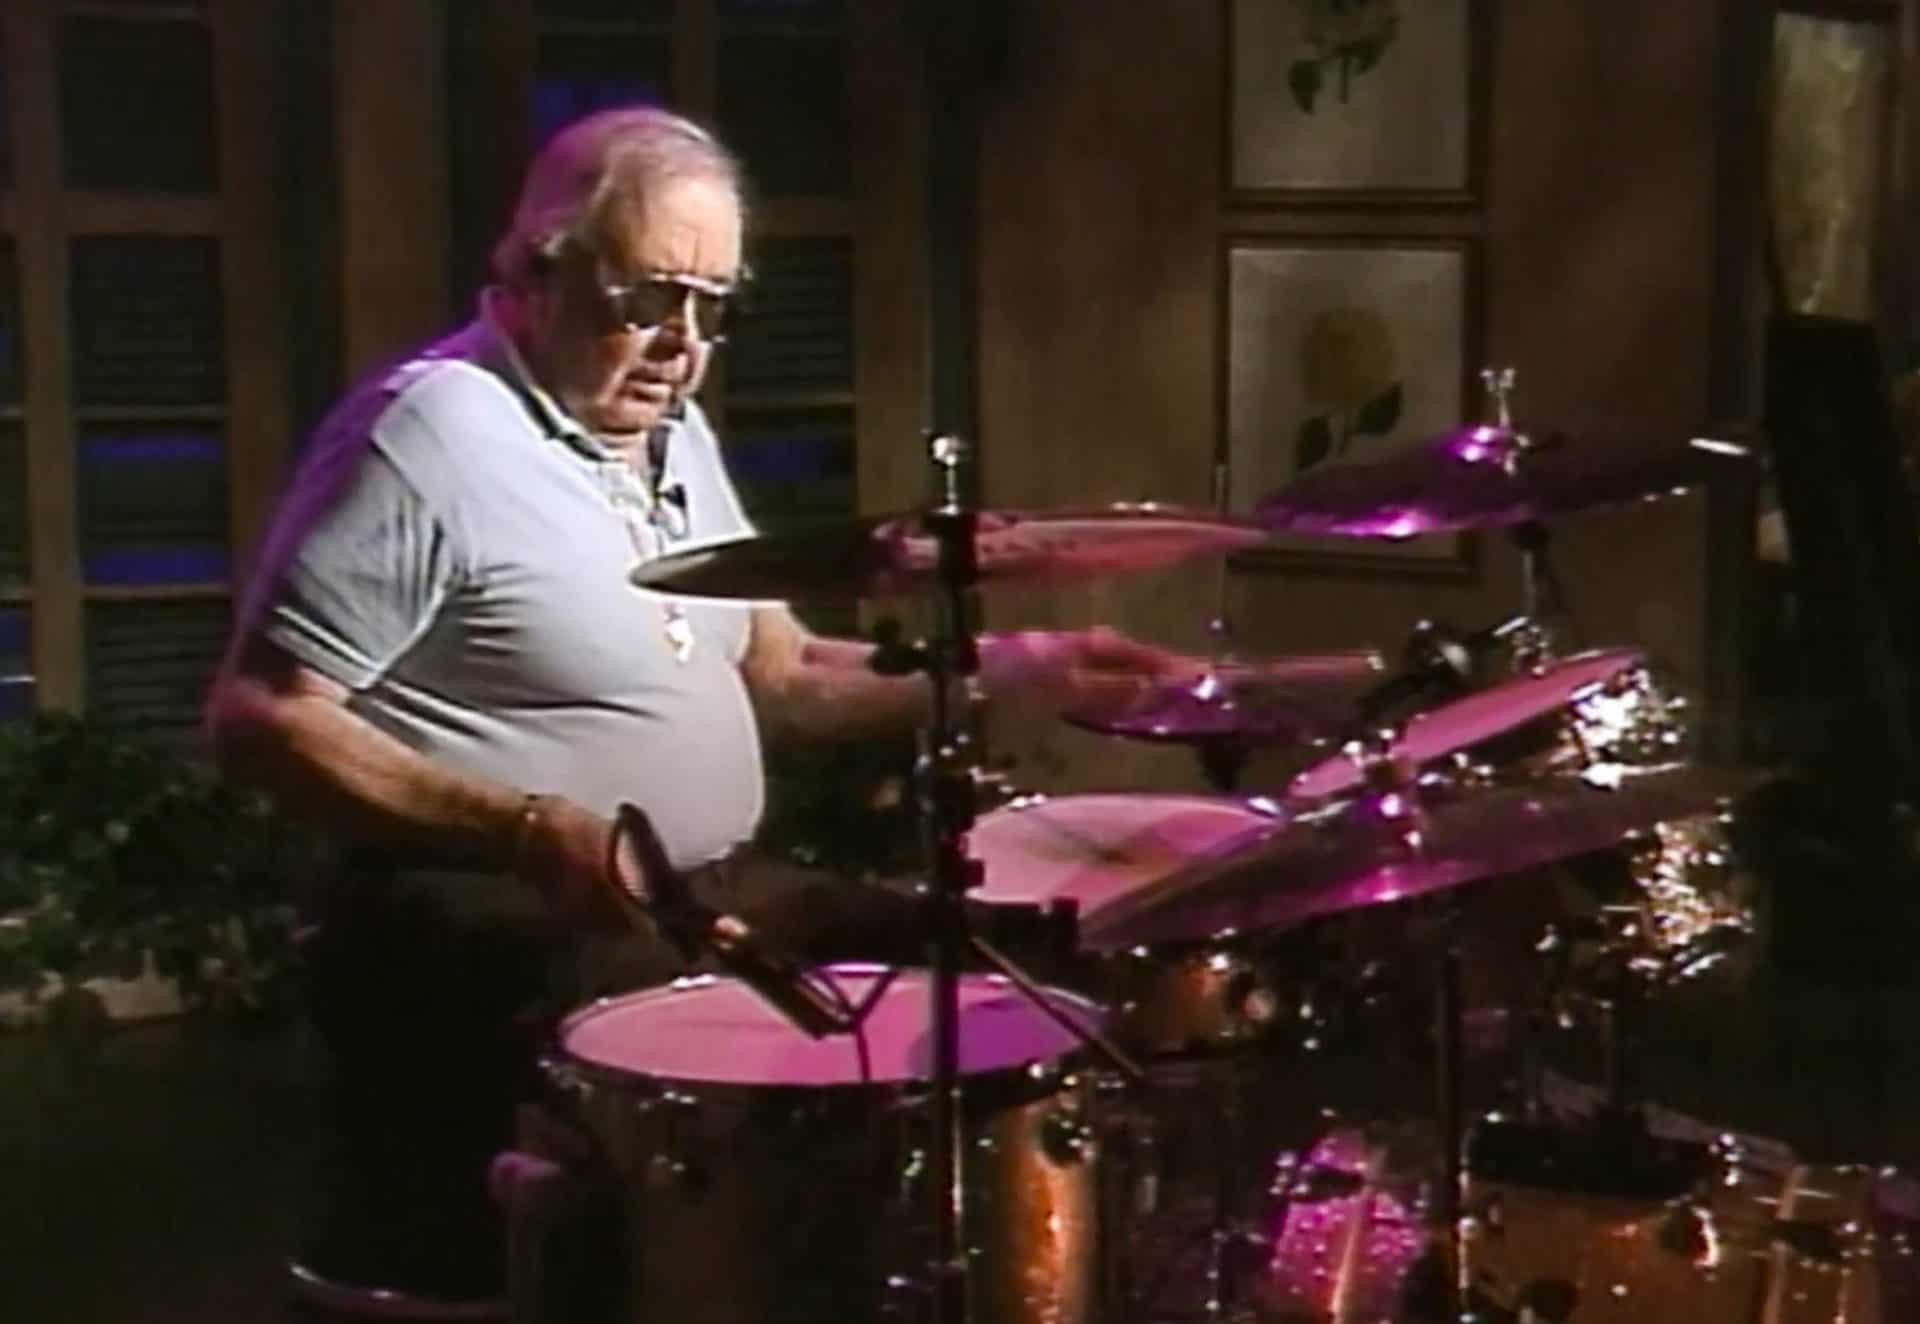 Joe Morello on drums